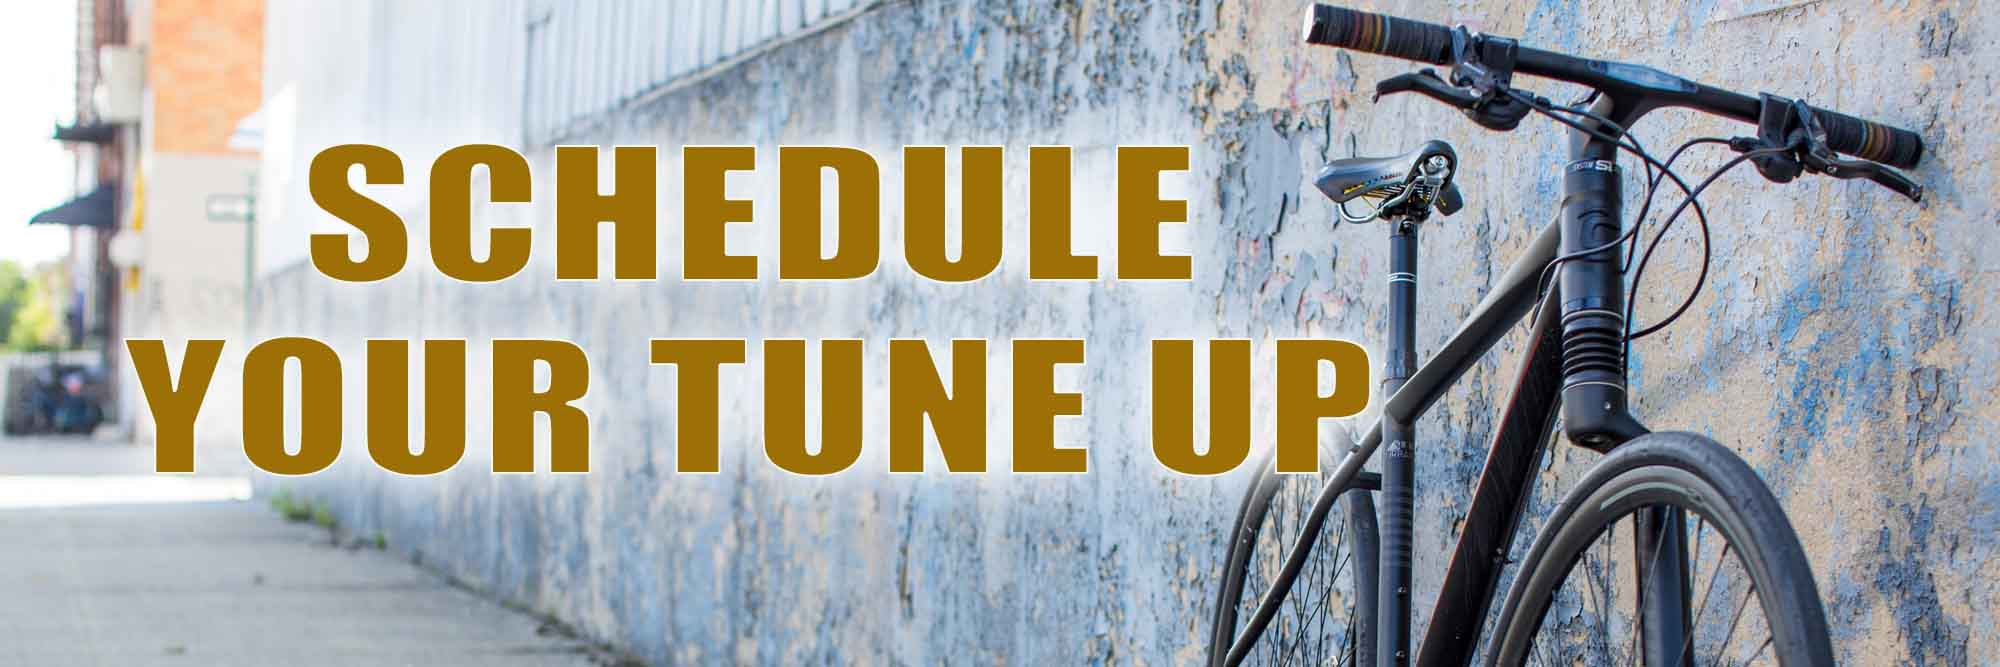 Schedule Your Tune Up